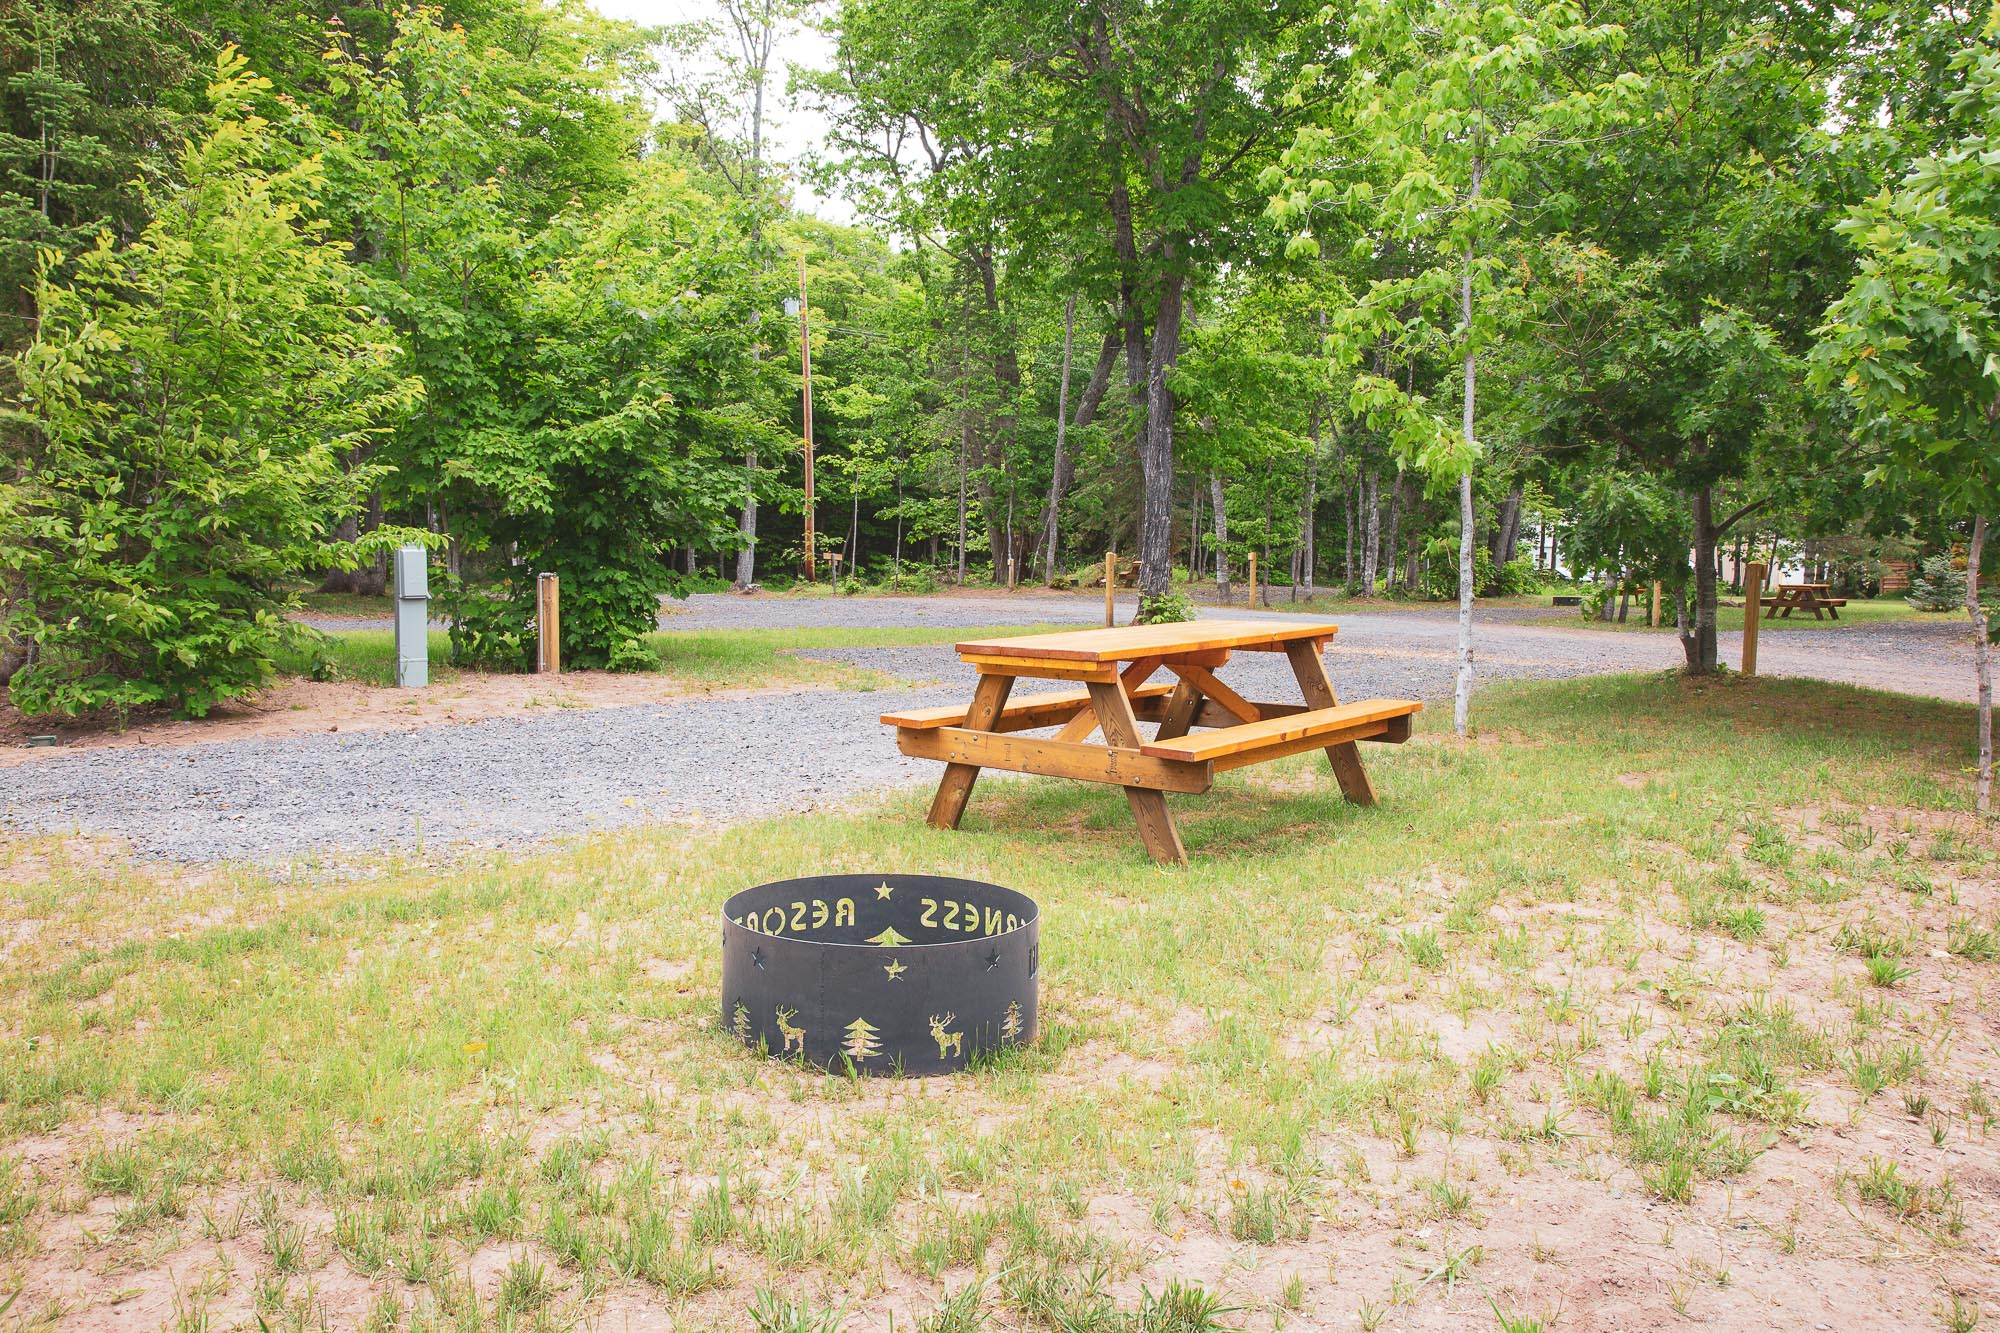 Photo of Campground Site 5 at the Wilderness Resort in Lac La Belle Michigan